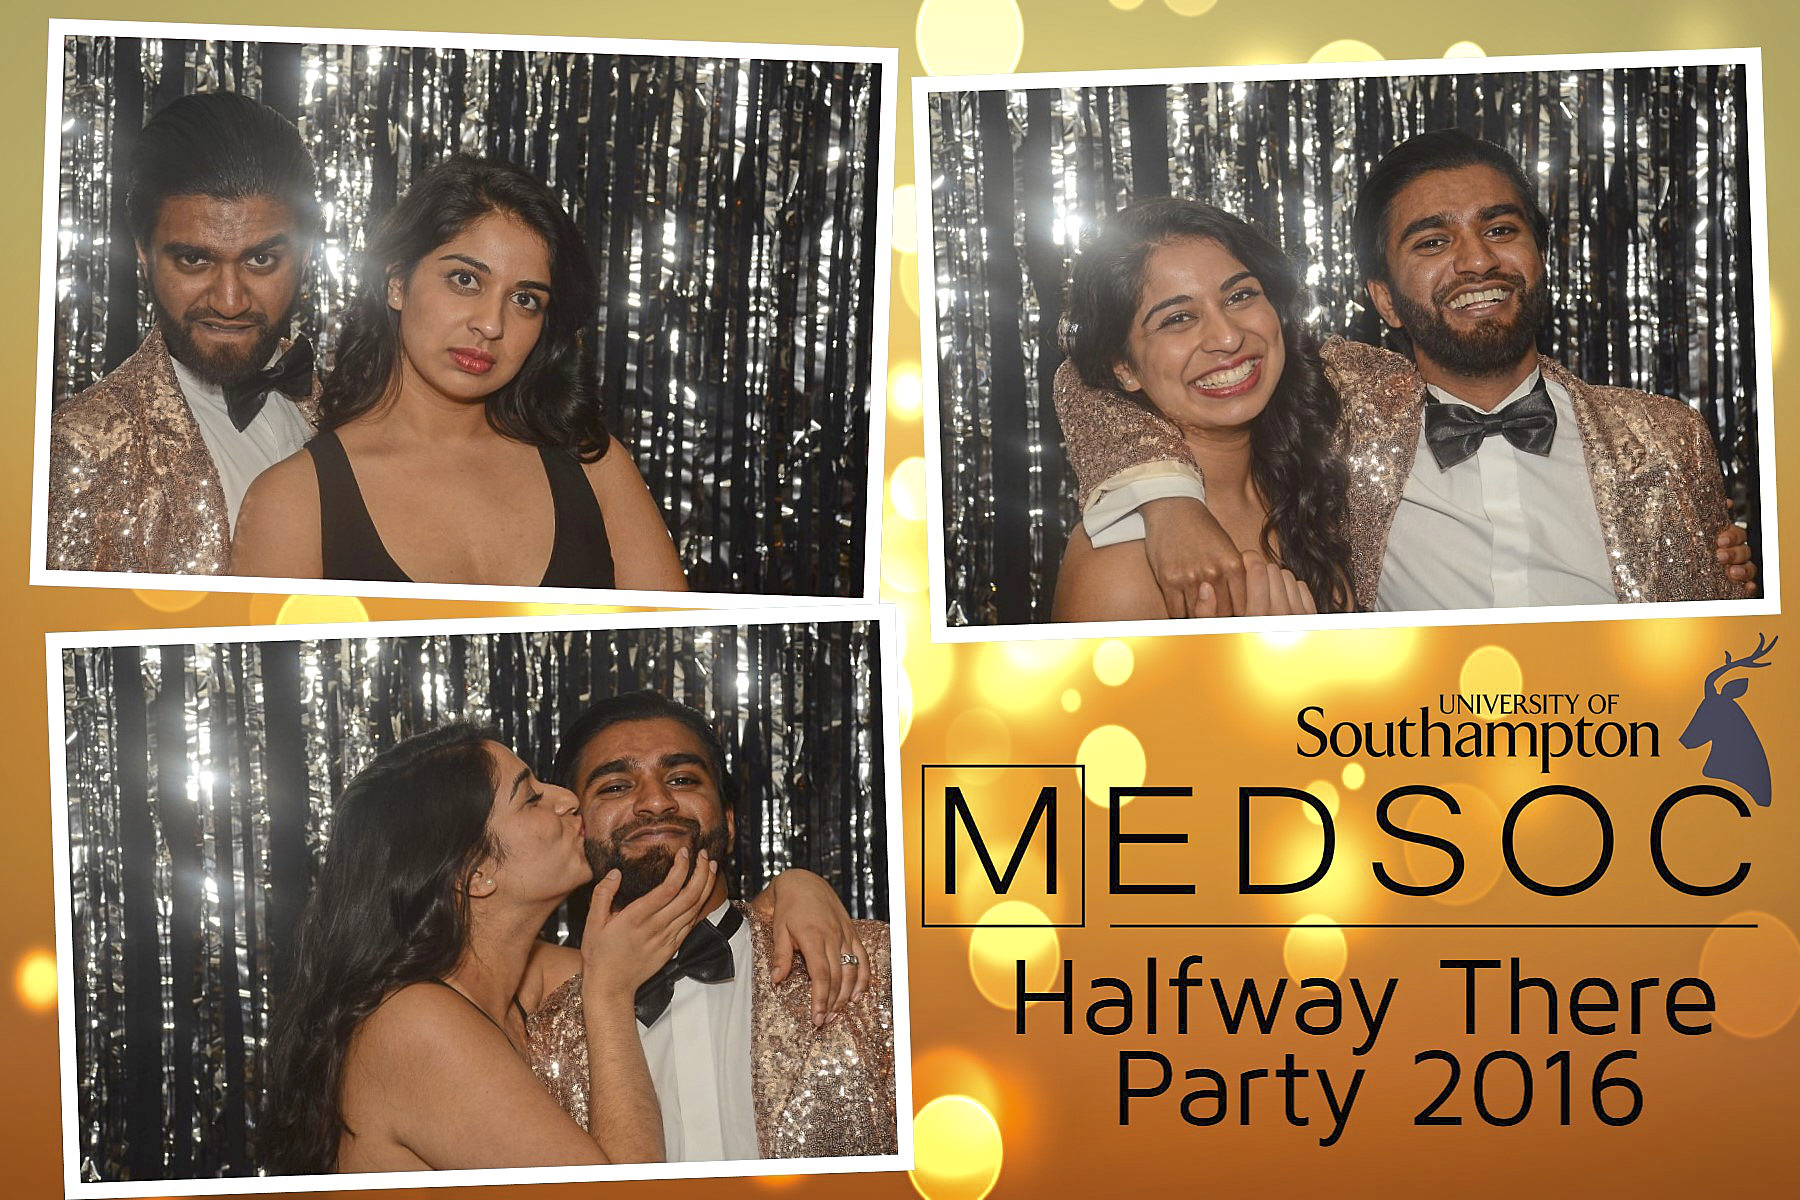 MedSoc Halfway There Party 2016 DS012208.jpg